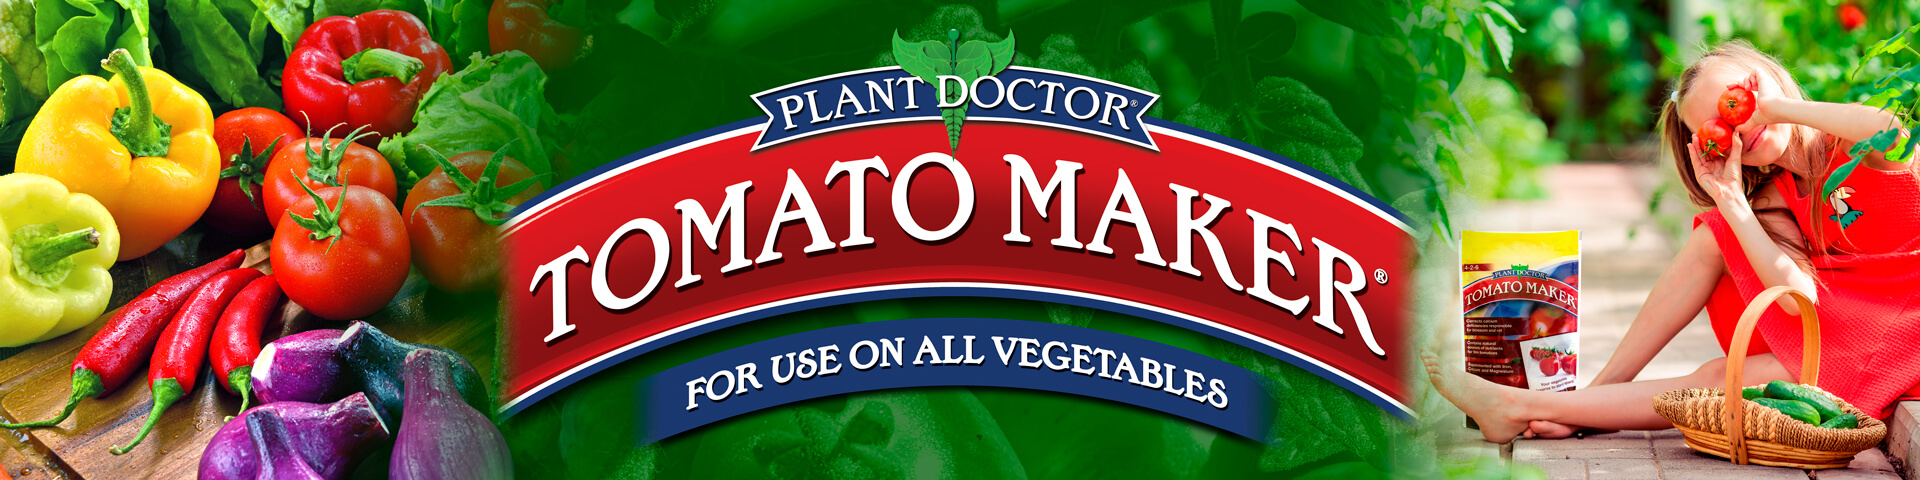 large tomato maker logo over mixed produce green tomato leaves and a young girl holding tomato with a bag of product